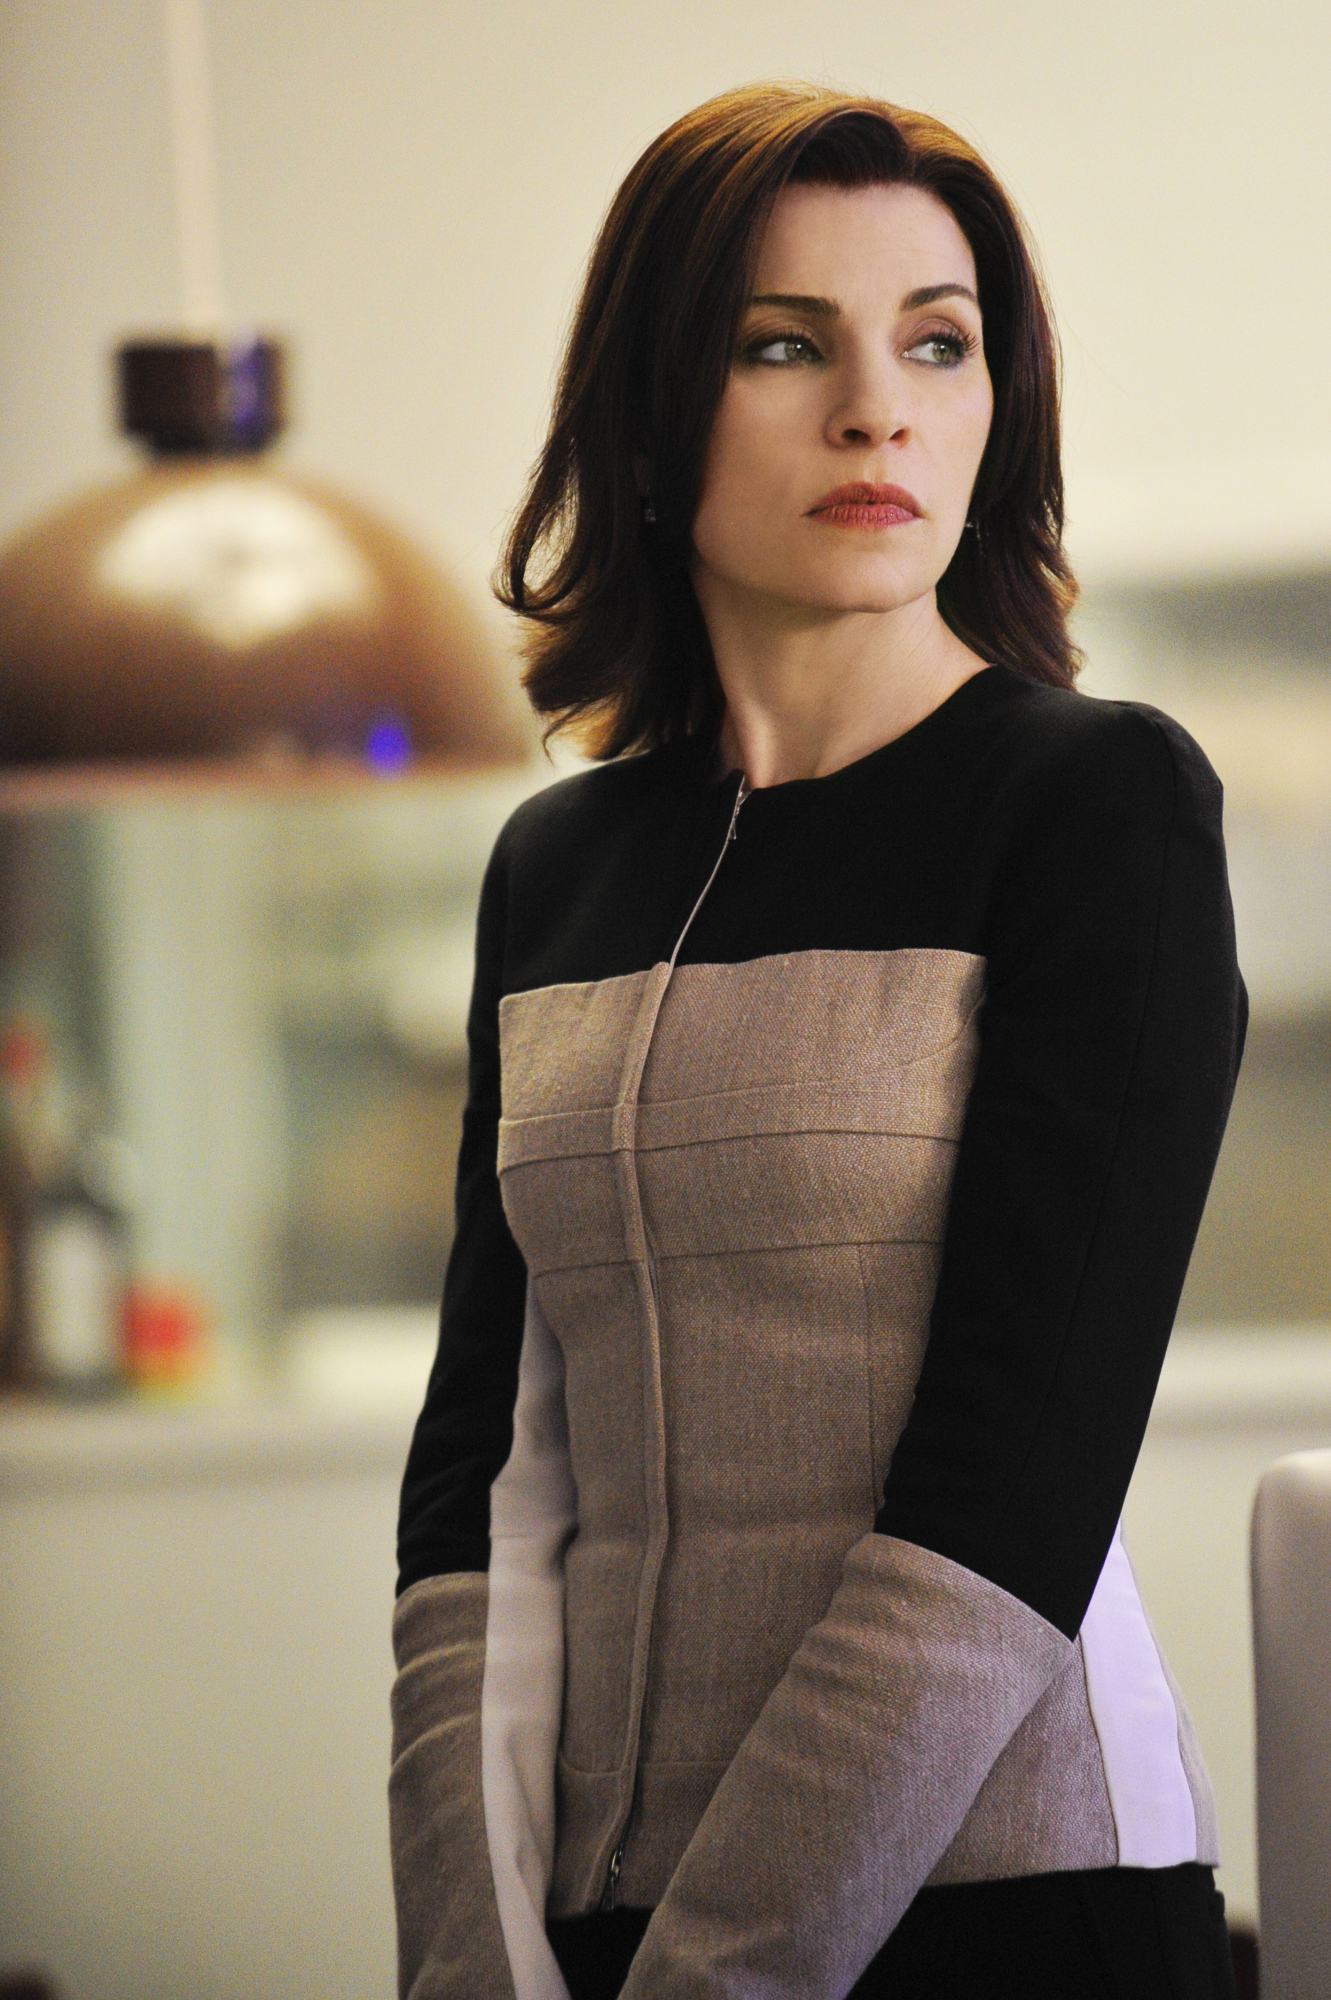 5. Her two biggest shows (The Good Wife and ER) are both set in the same location, Chicago!